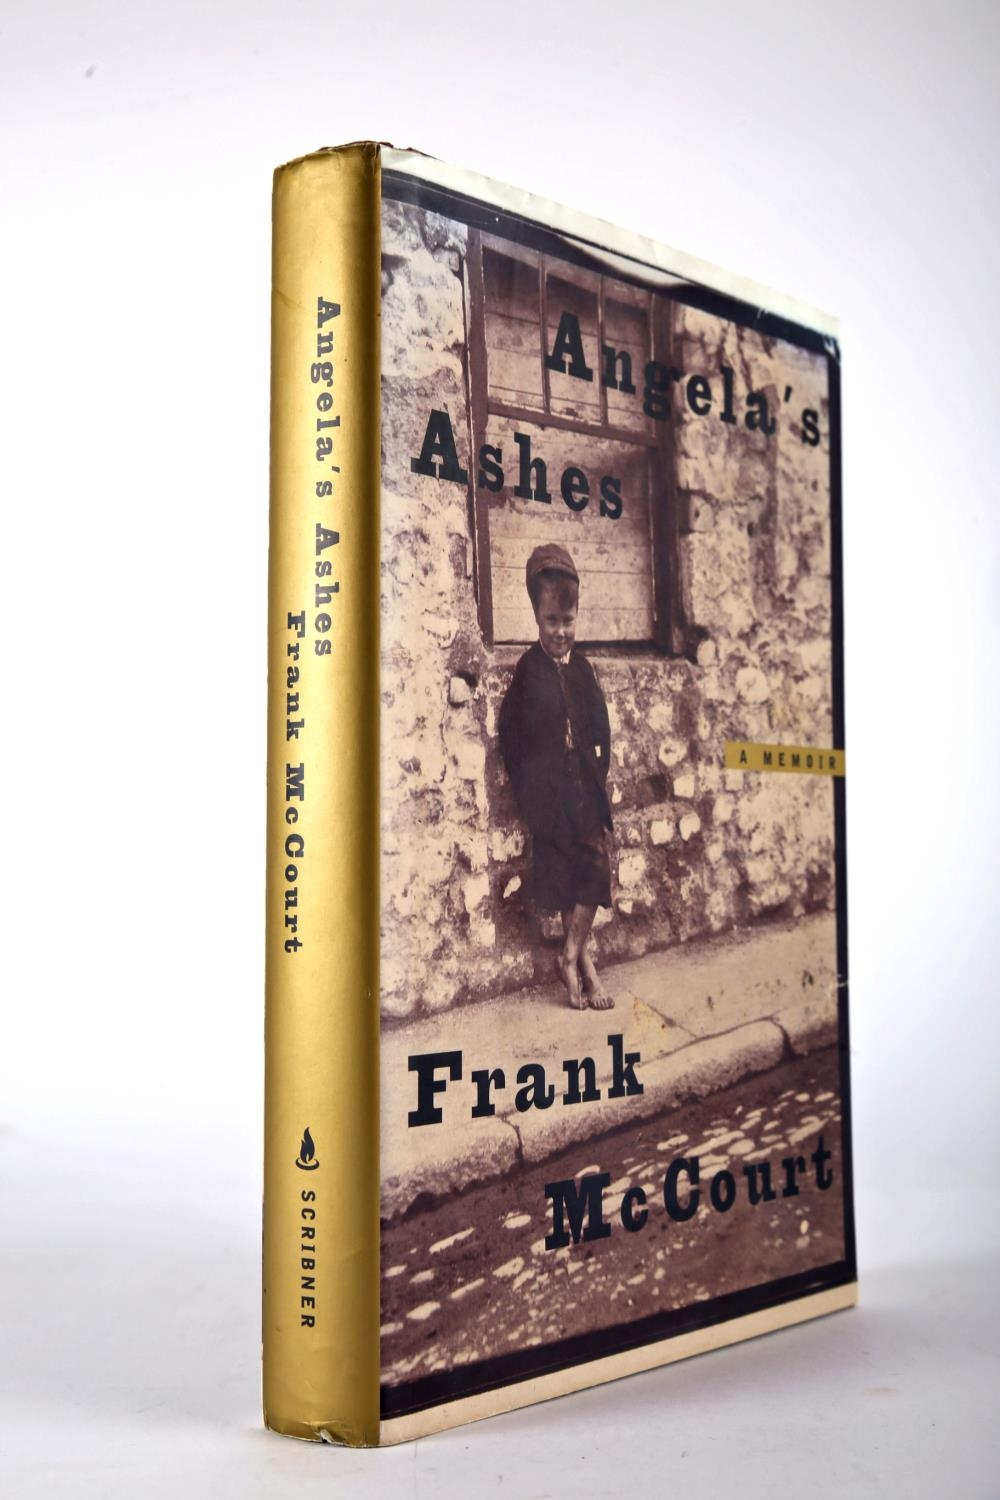 McCourt, Frank. Angela's Ashes. Scribner, New York. 1996, first edition, 8vo. red cloth gilt and